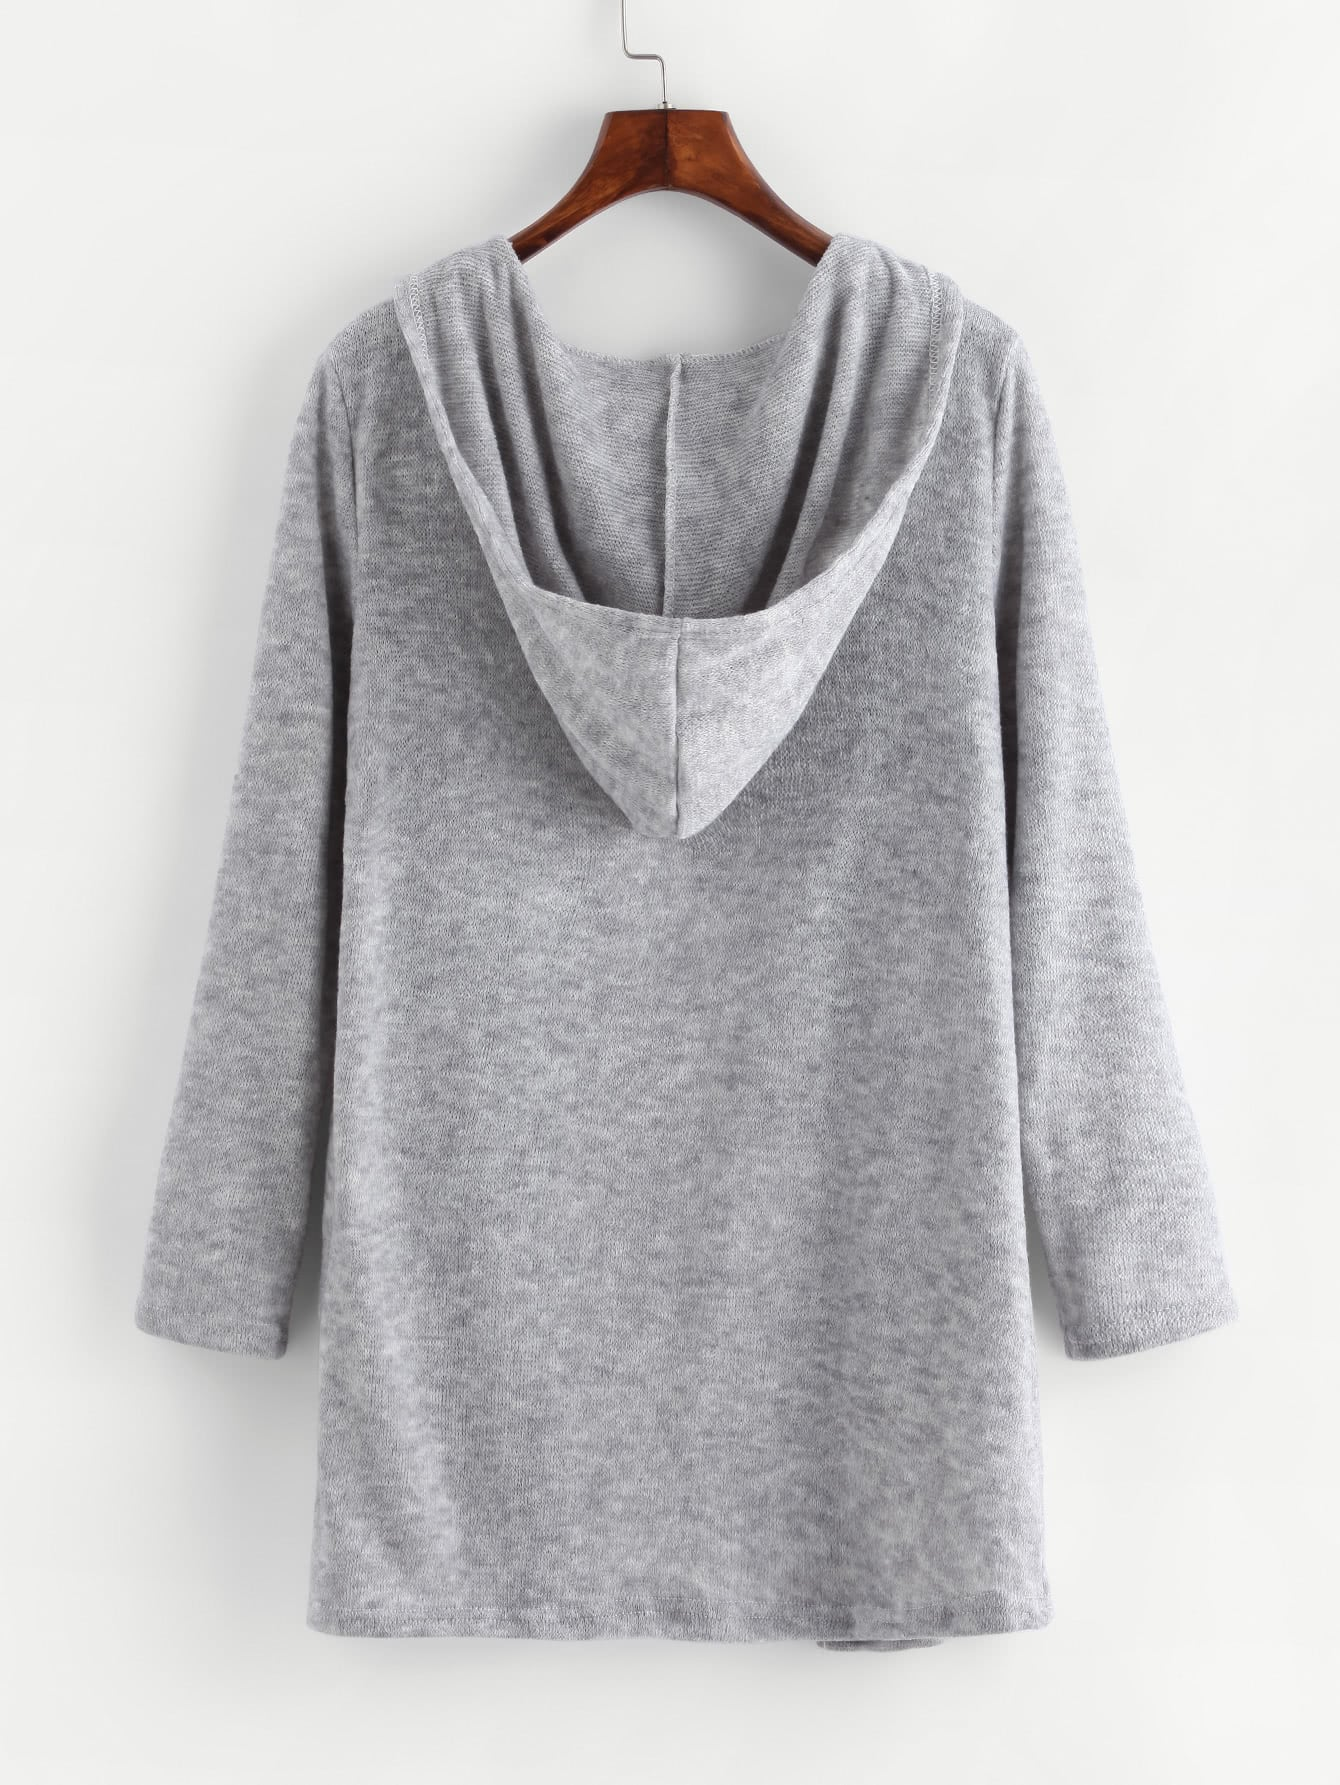 Dual Pocket Hooded Cardigan -SheIn(Sheinside)